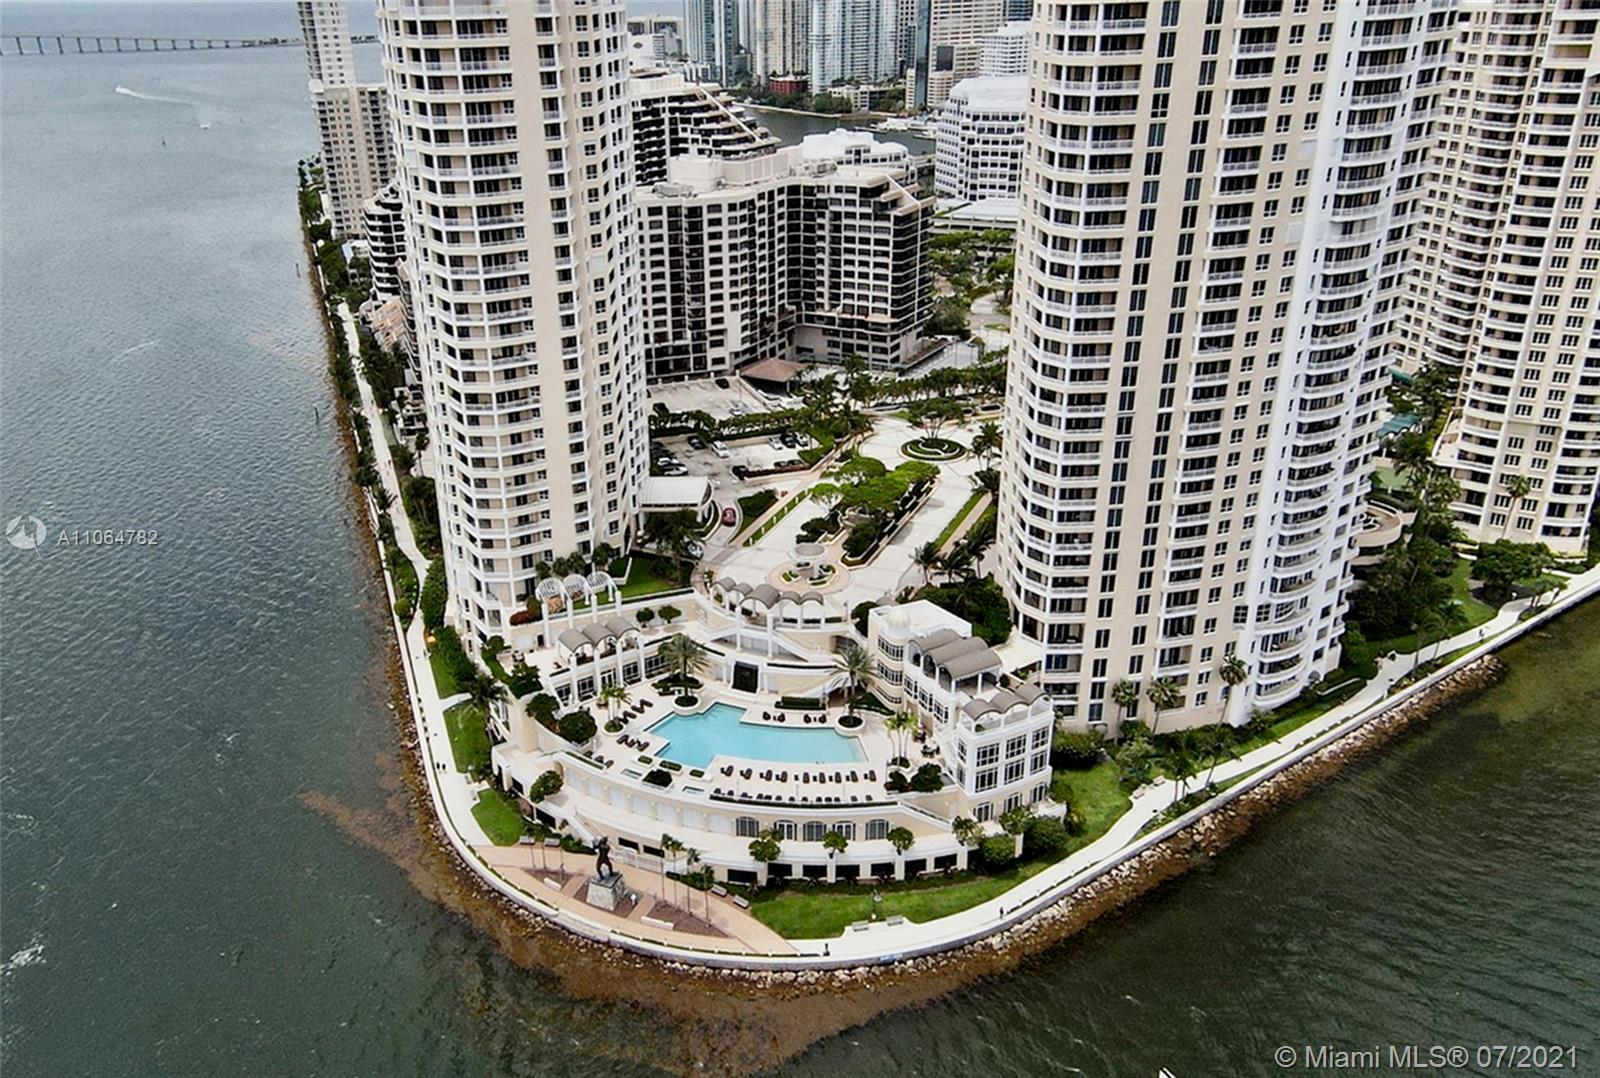 Luxurious 2-bedroom (Plus one converted), 2.5 bathrooms condo located in the exclusive Brickell Key